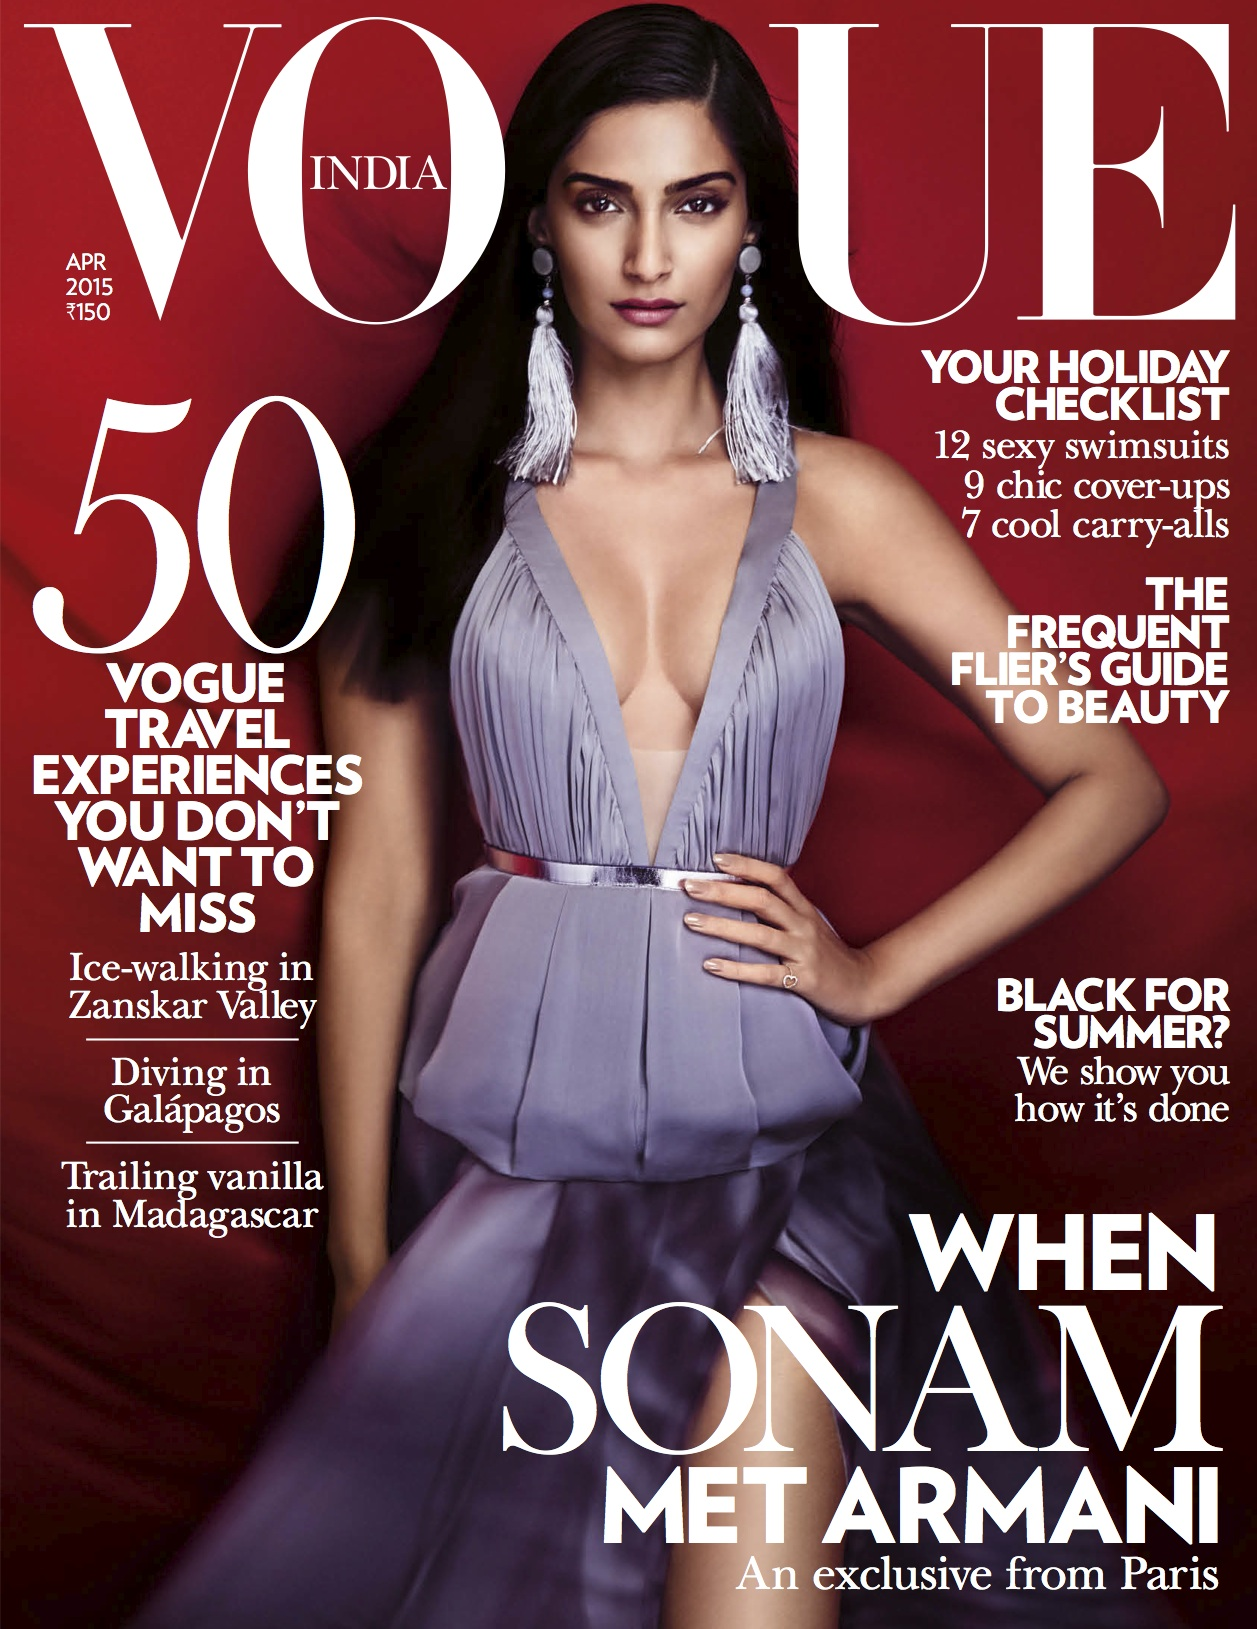 Vogue India and Miss Vogue